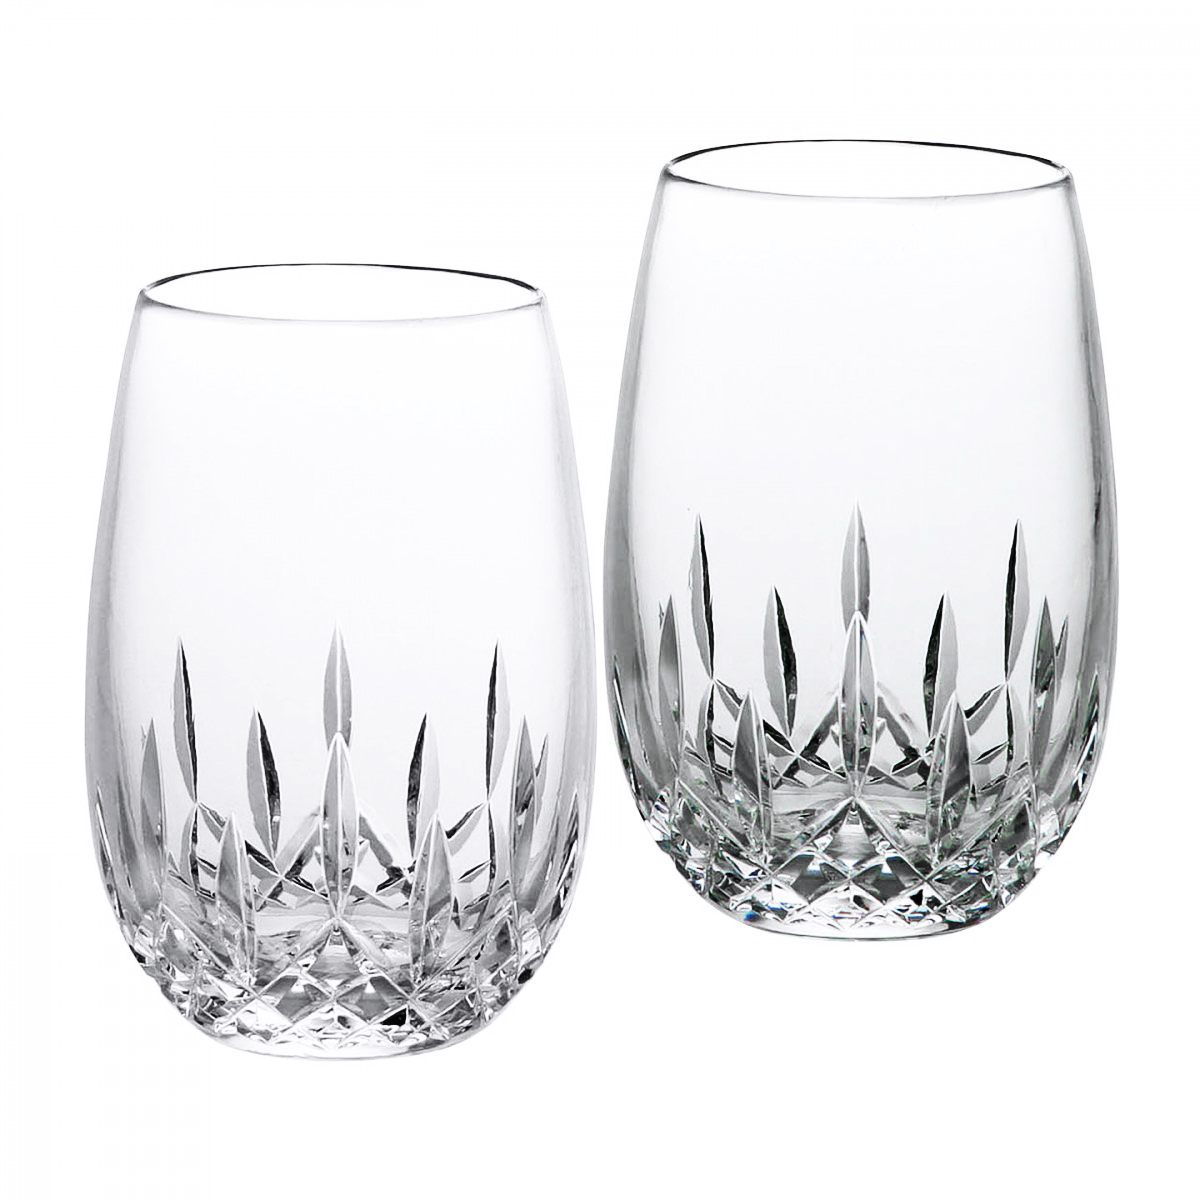 Waterford Crystal, Lismore Essence Stemless White Wine, Pair